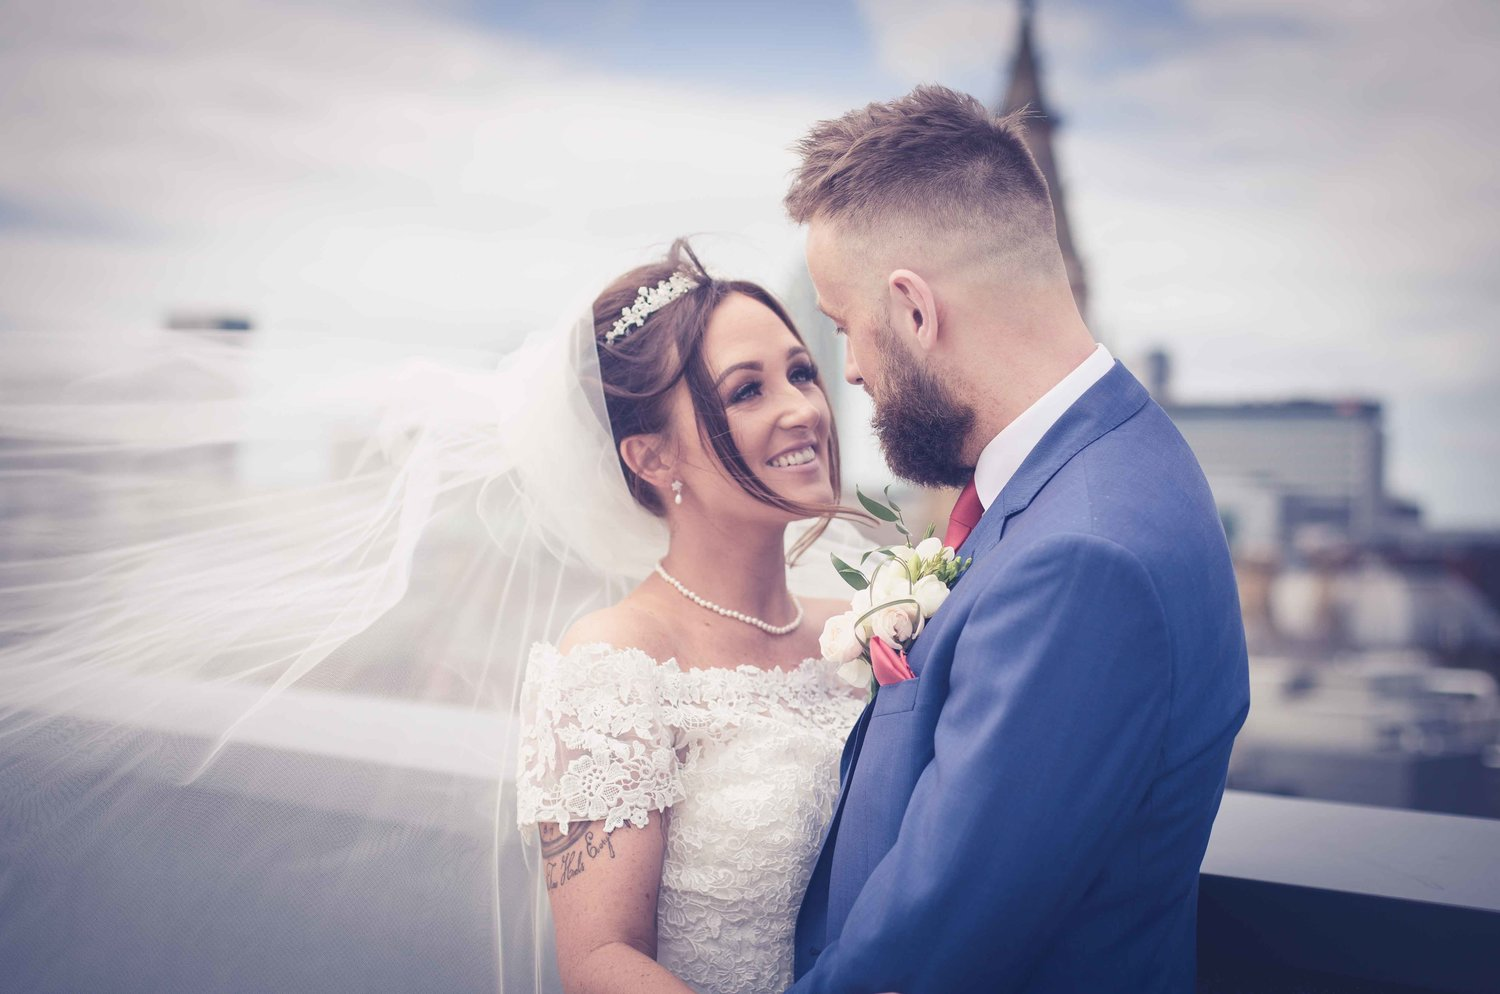 Wedding Photography at the Shankly Hotel